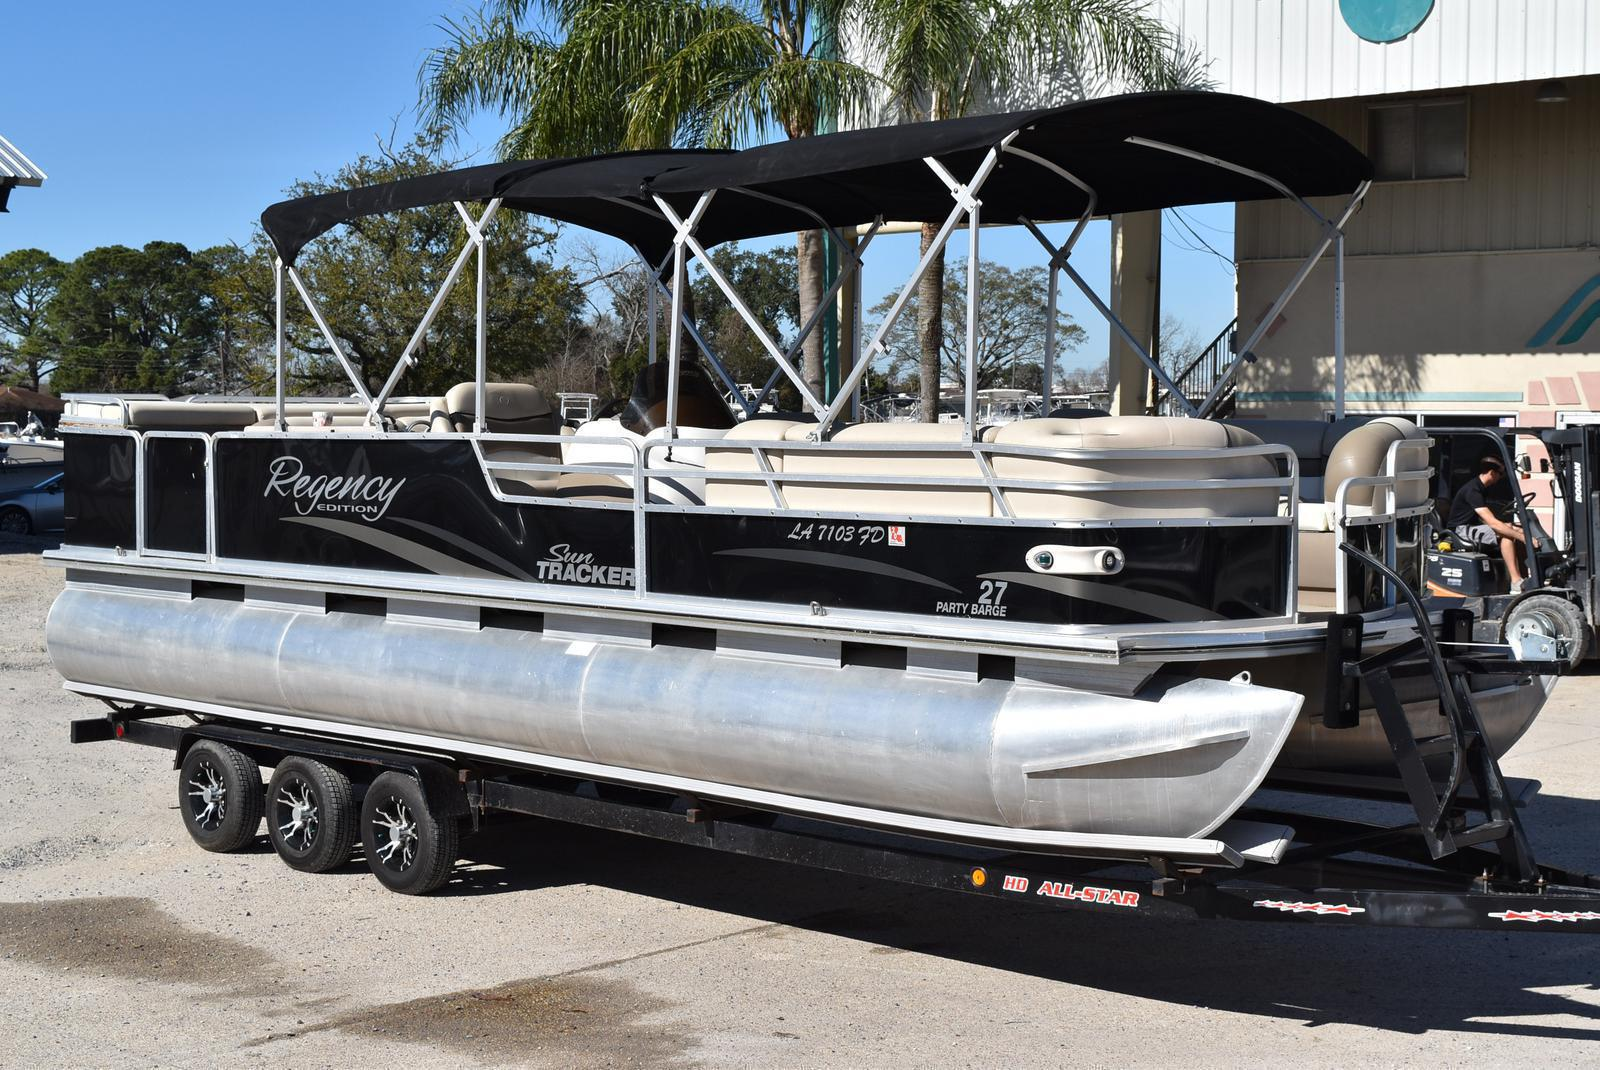 2001 Regency boat for sale, model of the boat is 27 Party Barge & Image # 6 of 12